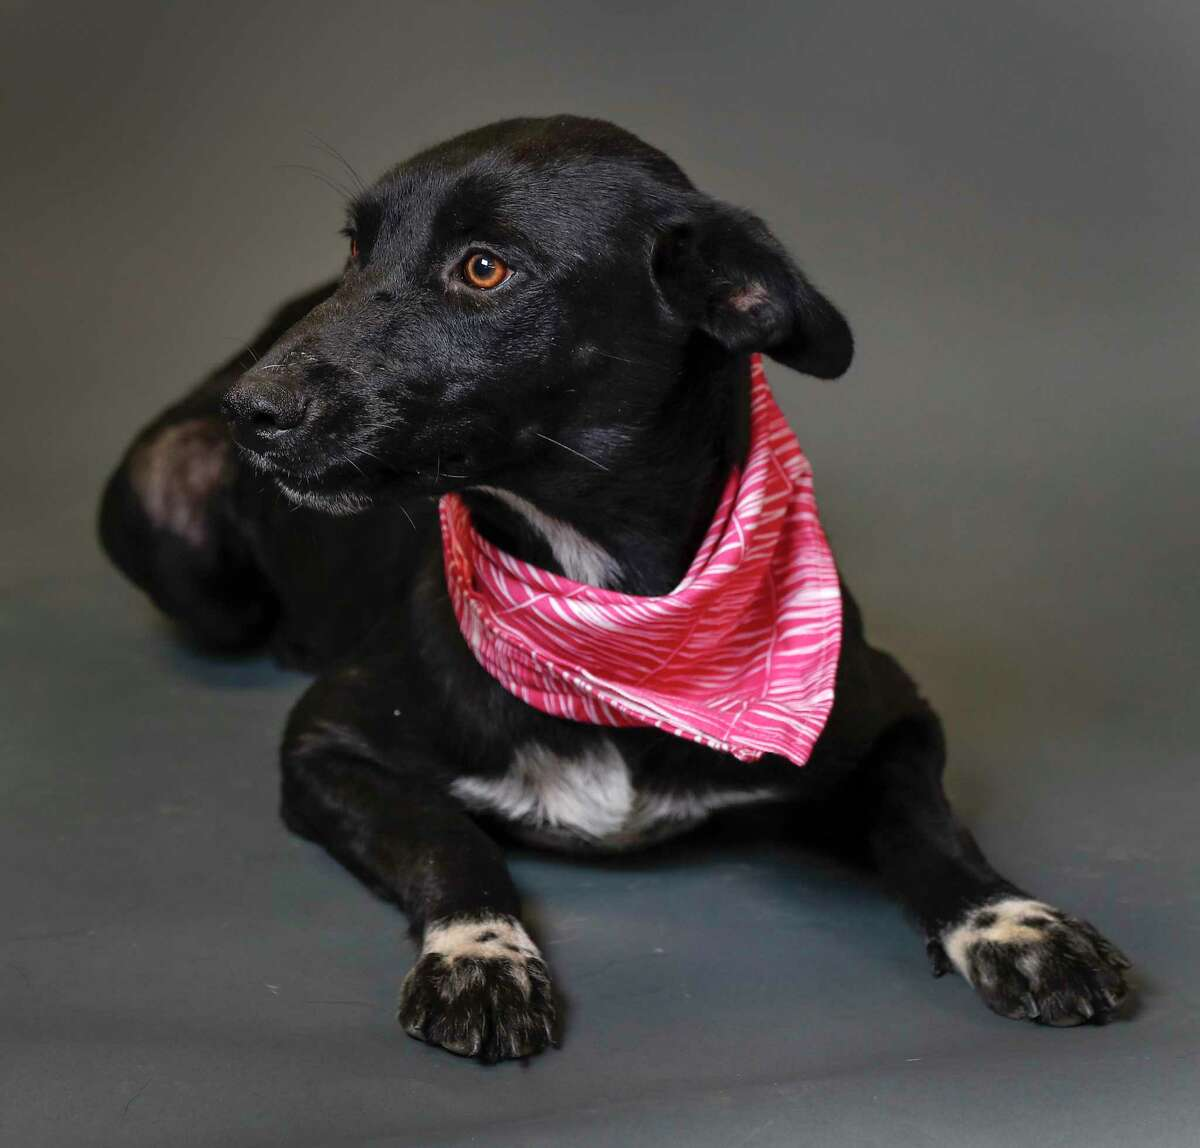 Missy is a 10-month-old, female, Border Collie mix available for adoption at the Harris County Animal Shelter, in Houston. (Animal ID: A537644) Photographed Tuesday, July 23, 2019. Missy is a sweet young dog, who was surrendered by her owner, and she is terrified of the shelter.